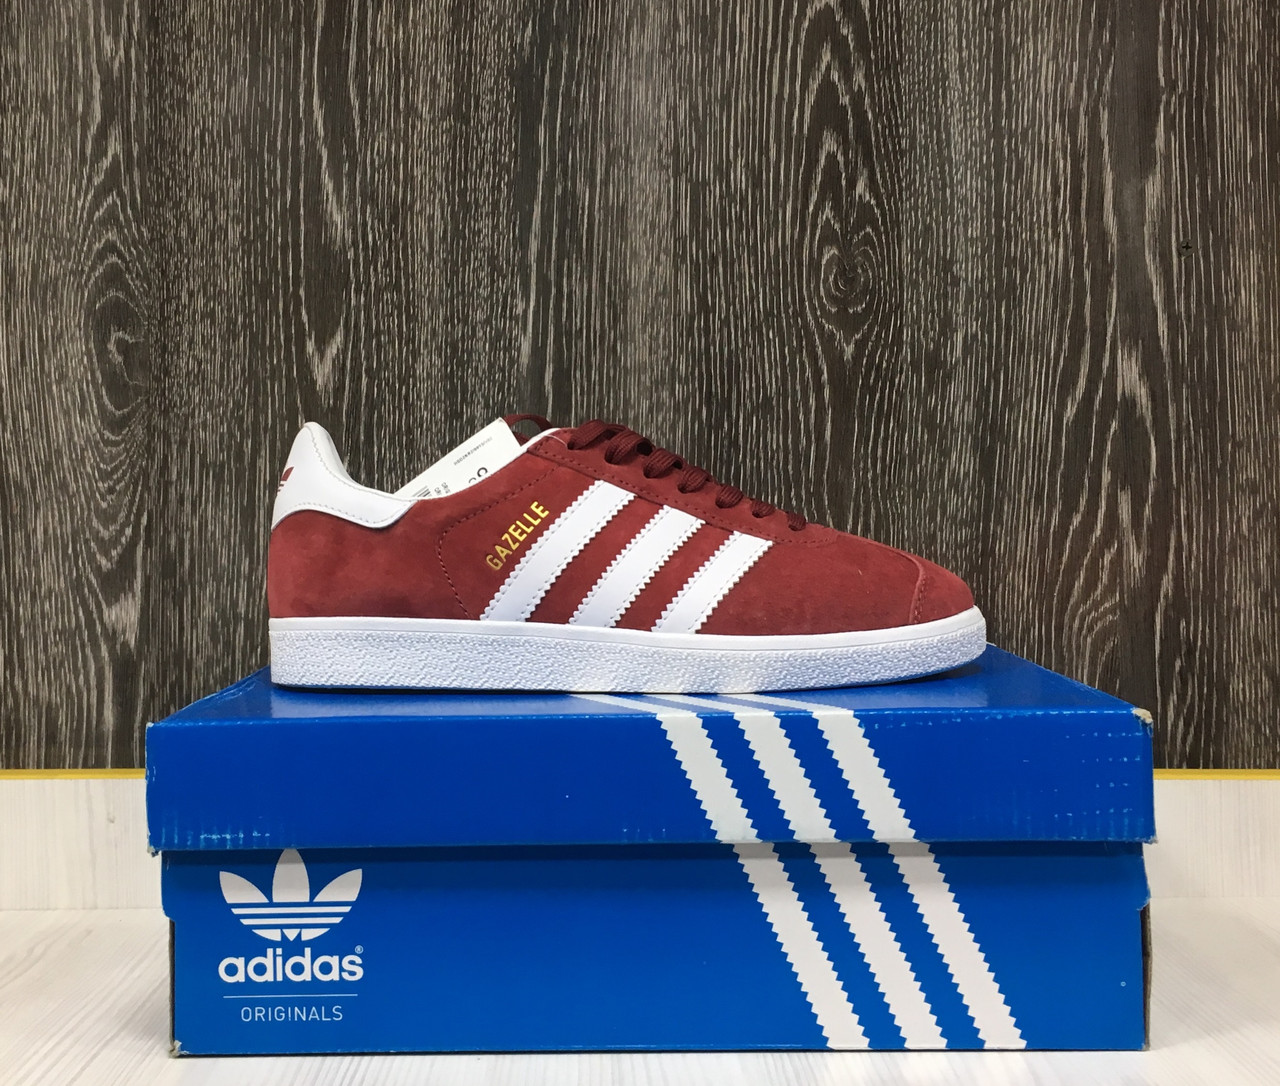 Кроссовки Adidas Gazelle Originals